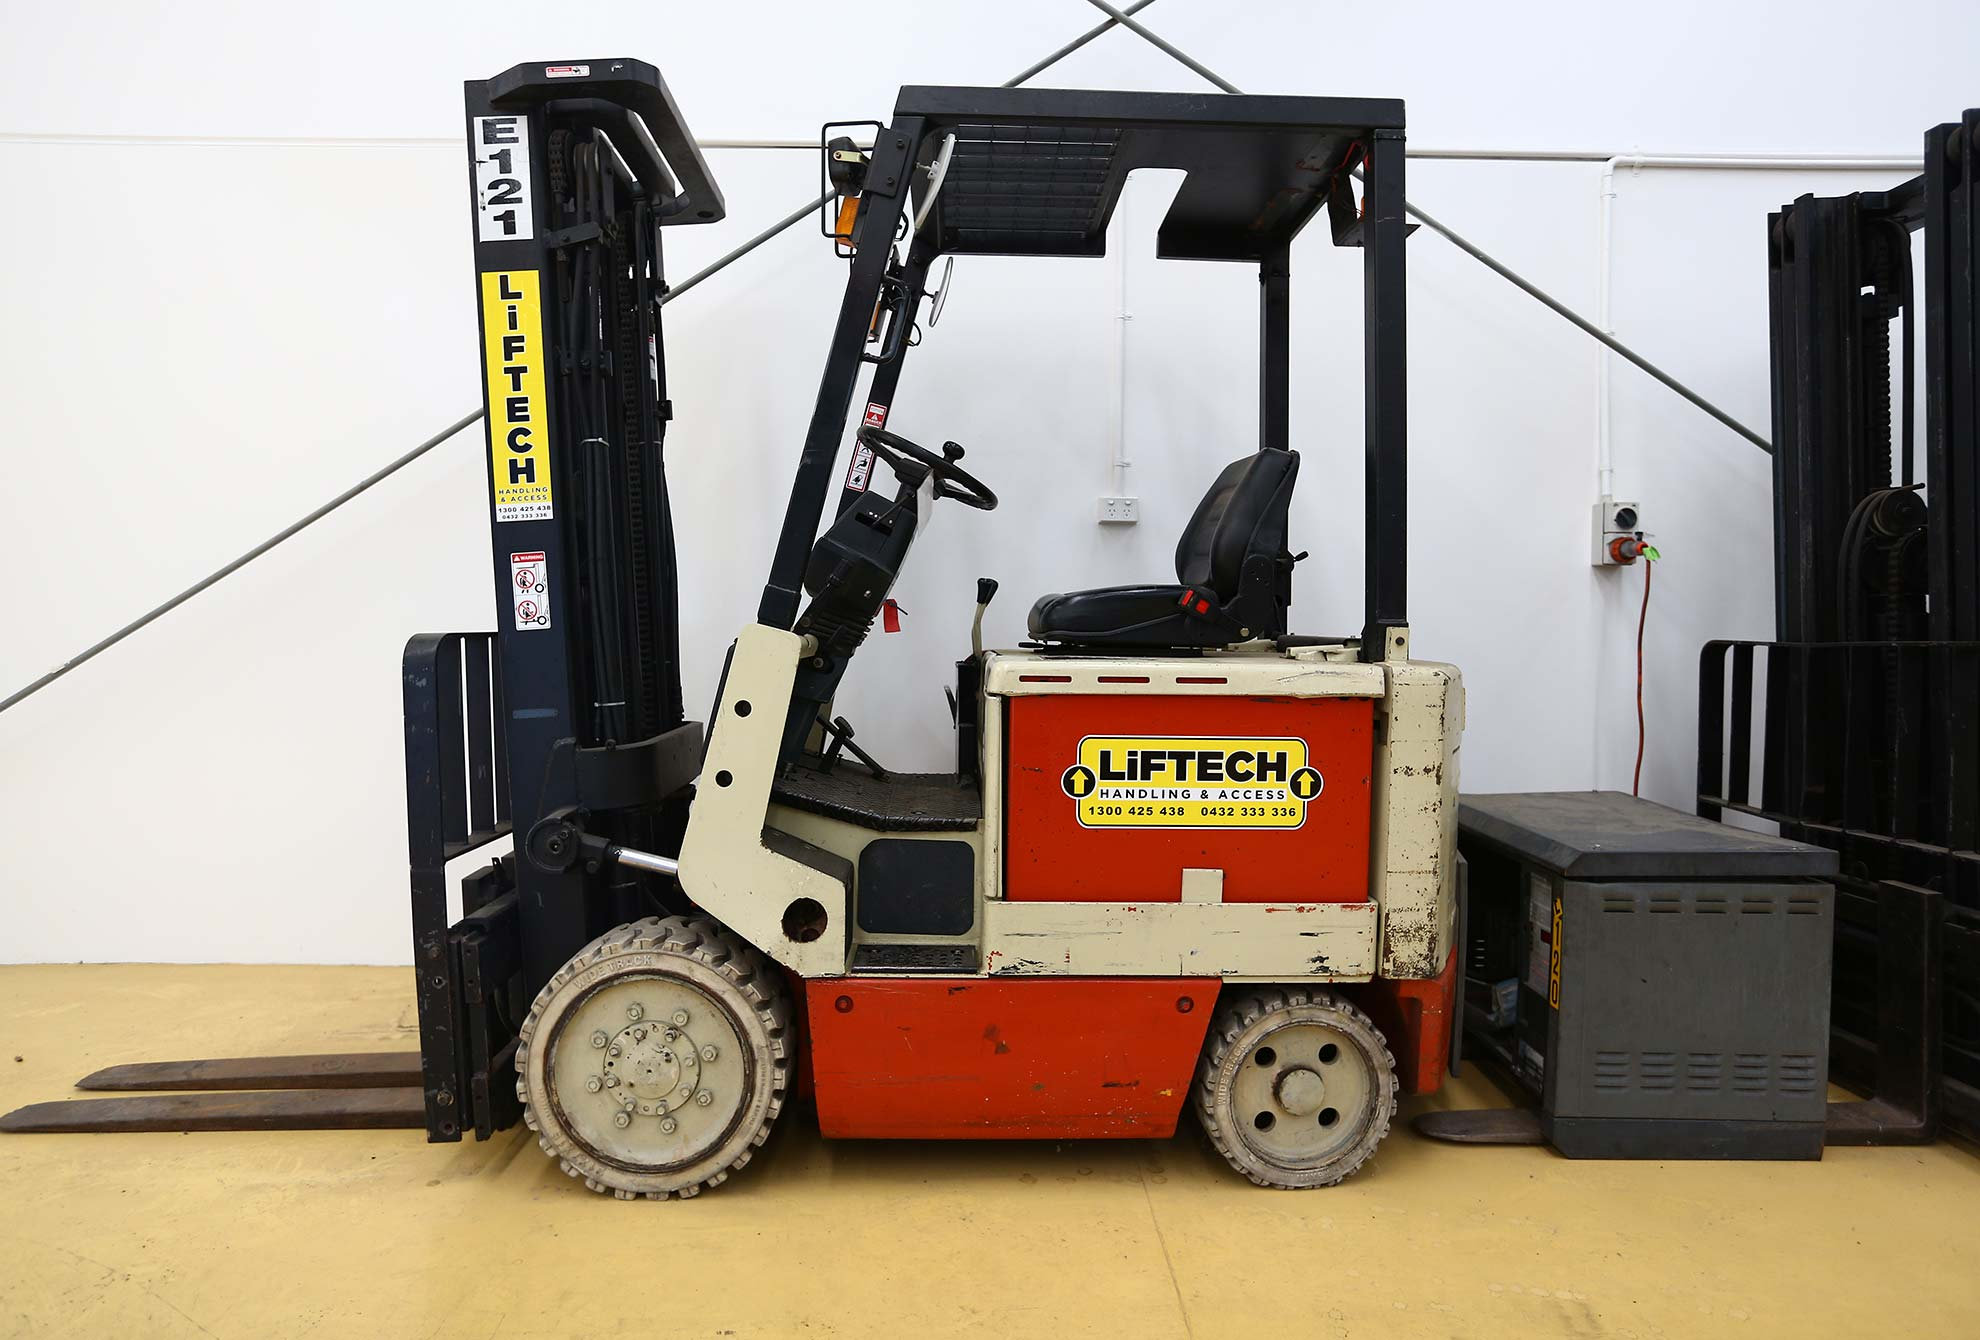 2.5 Counter Balance Forklift for Rental in Melbourne